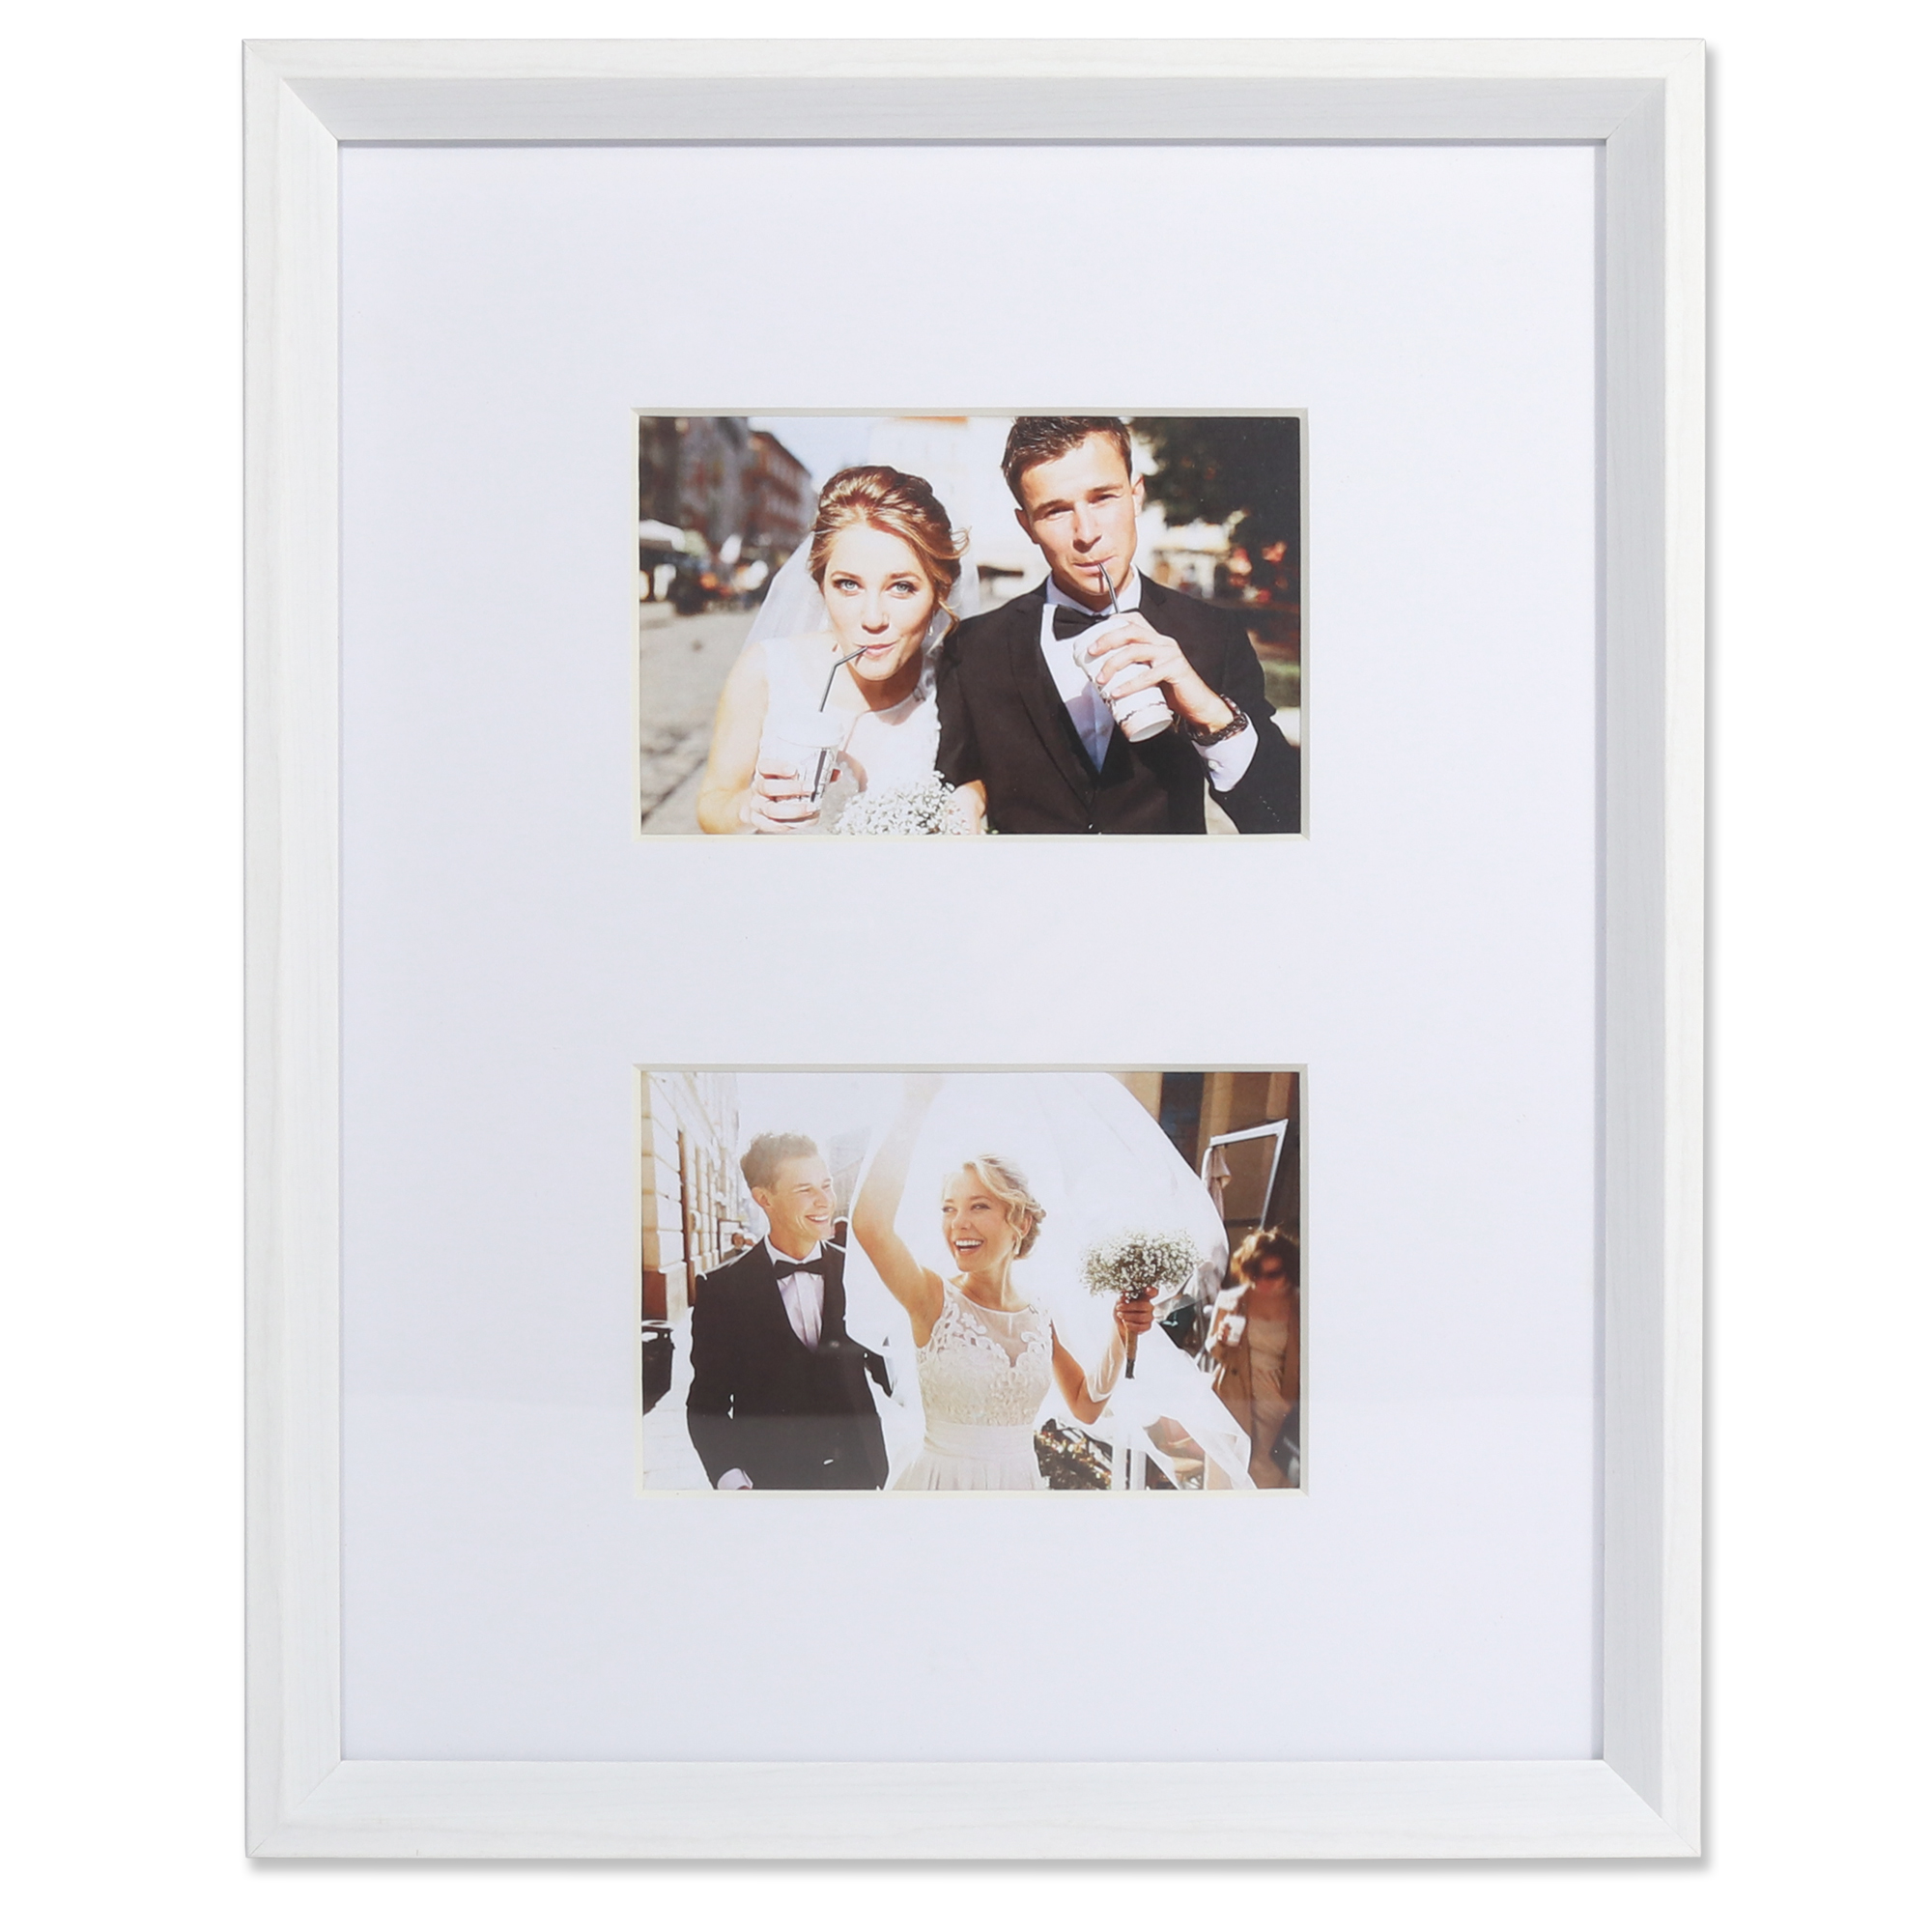 4x6 Wide Border Double Matted Frame - Gallery White 11x14 ...